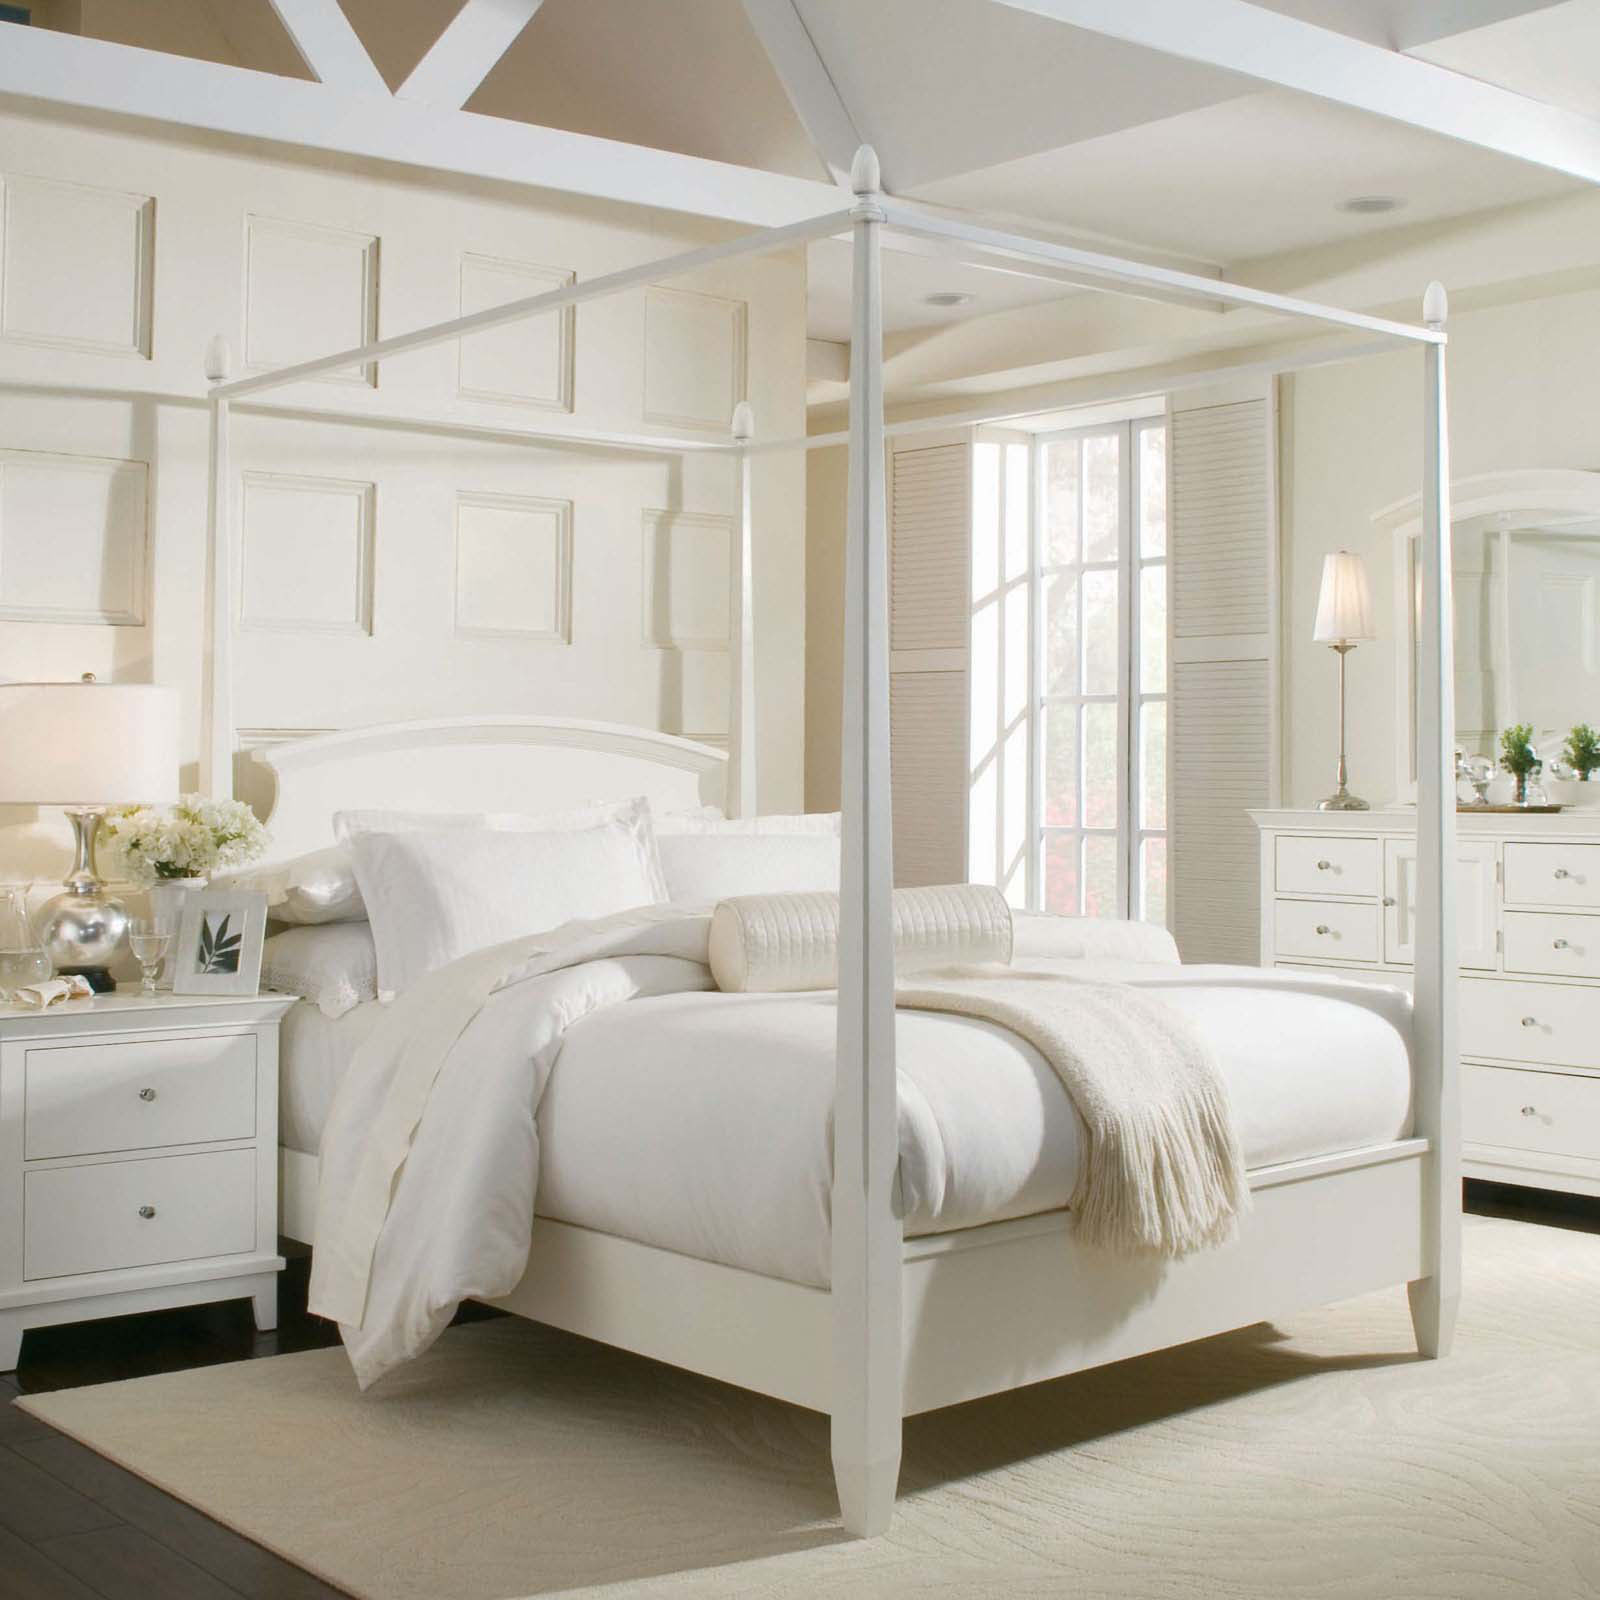 Silver Canopy Bed Frame Part - 39: Hardwood Flooring White Ruh White Cabinet White Framed Mirror White Side  Table White Silver Table Lamps